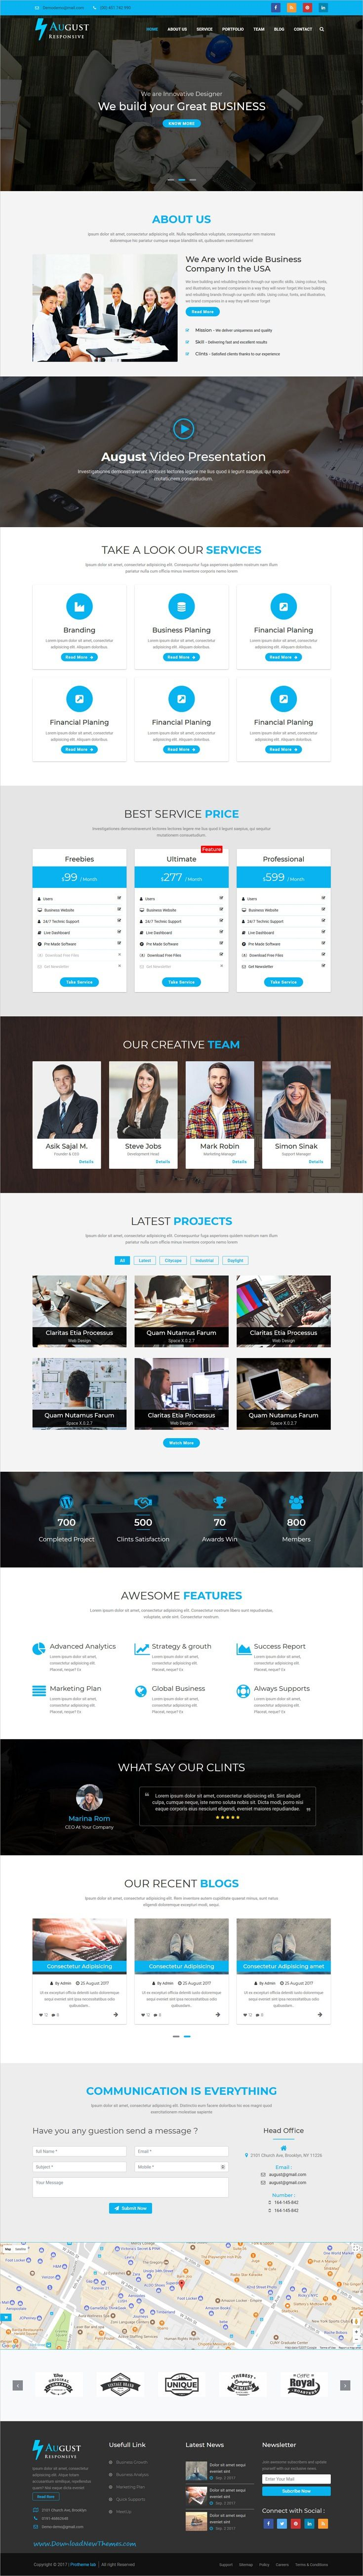 August is clean and modern design responsive #bootstrap template for #business consulting and professional services website to live preview & download click on Visit 👆